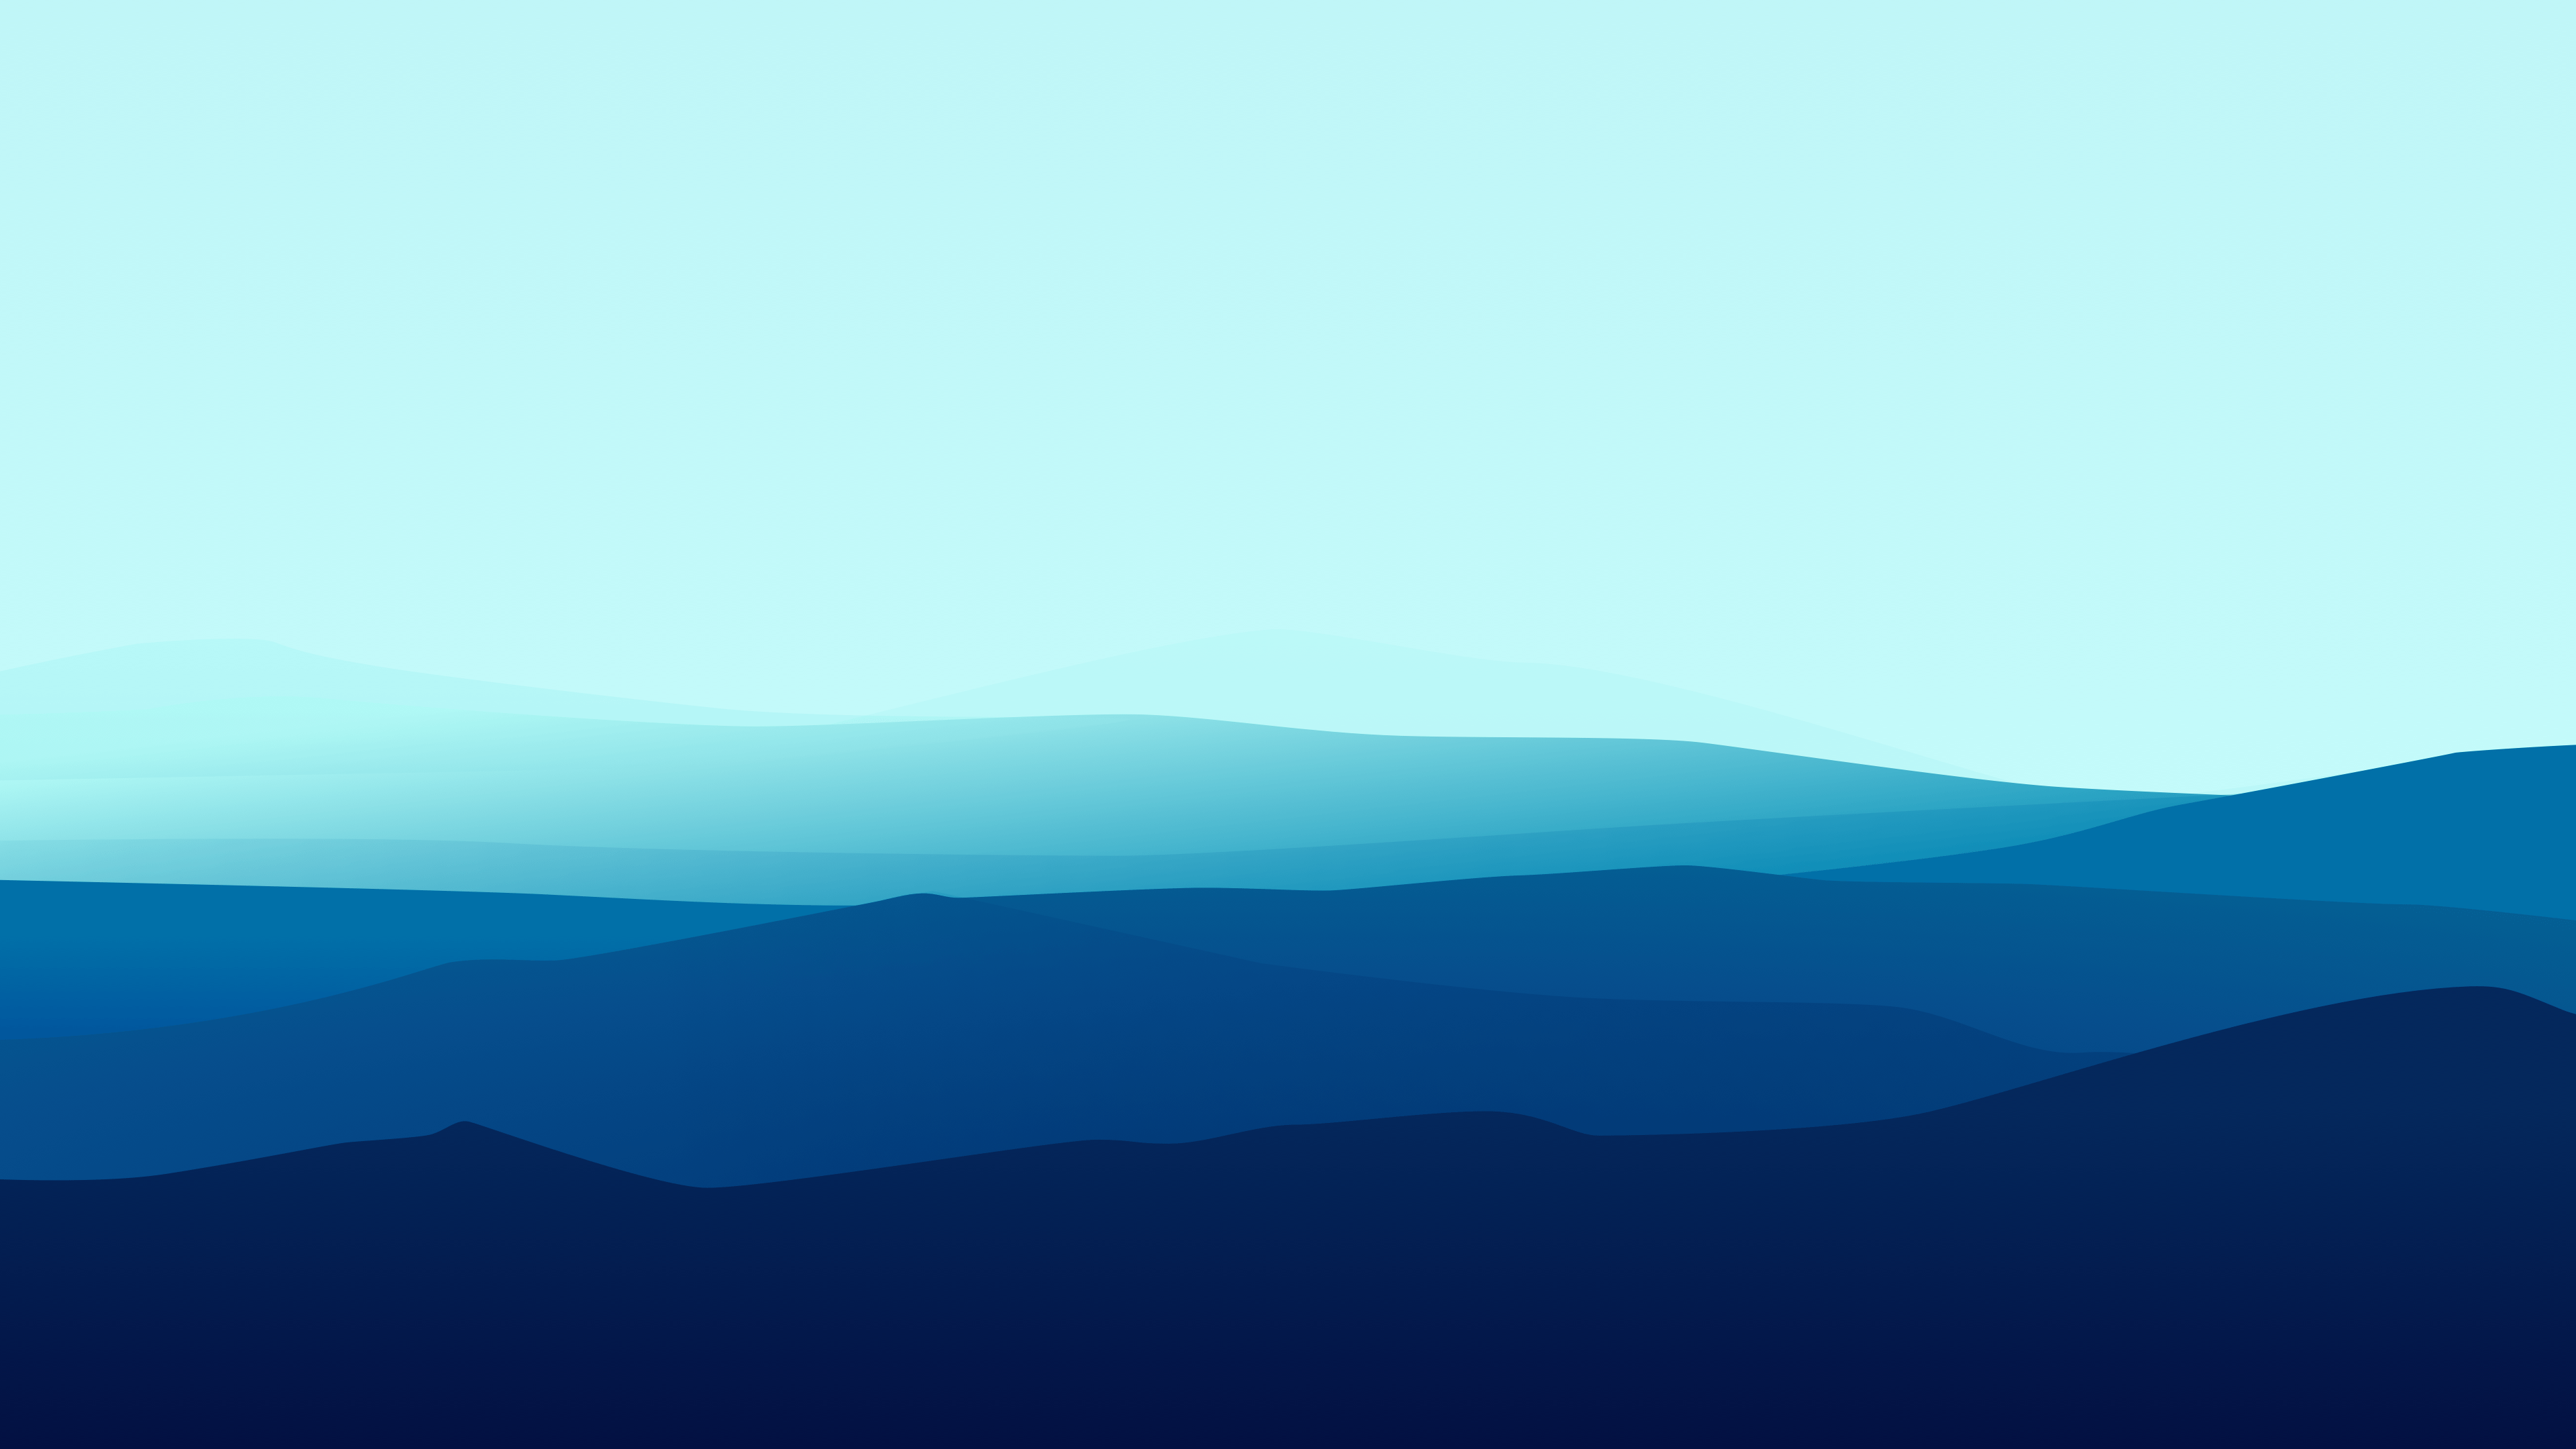 25 Minimalist QHD Wallpapers for your PC or MacBook   deTeched 3840x2160